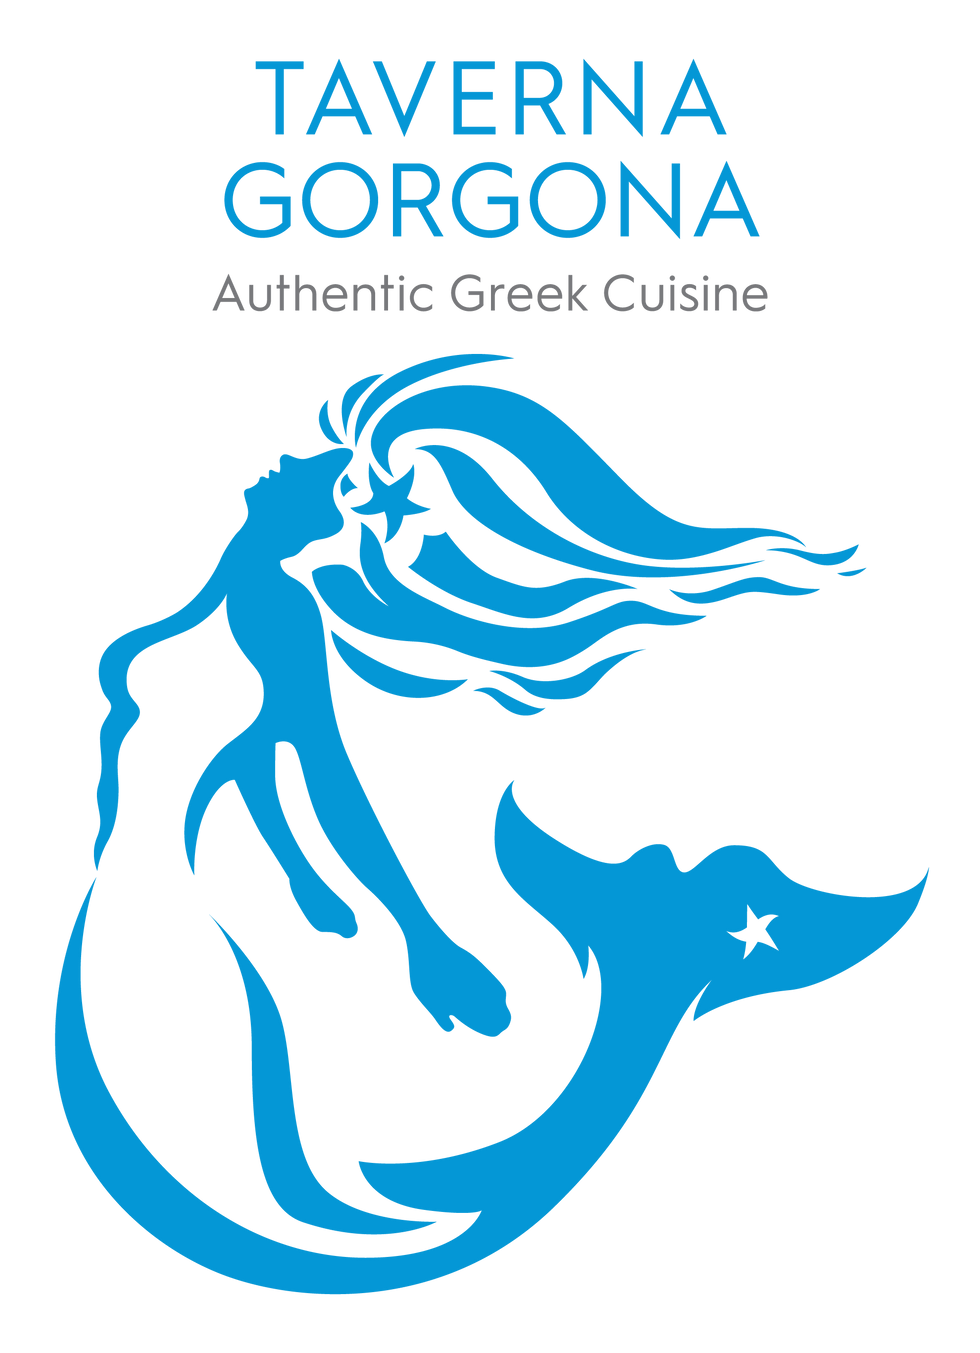 taverna_gorgona_blue2925_2020_final.png